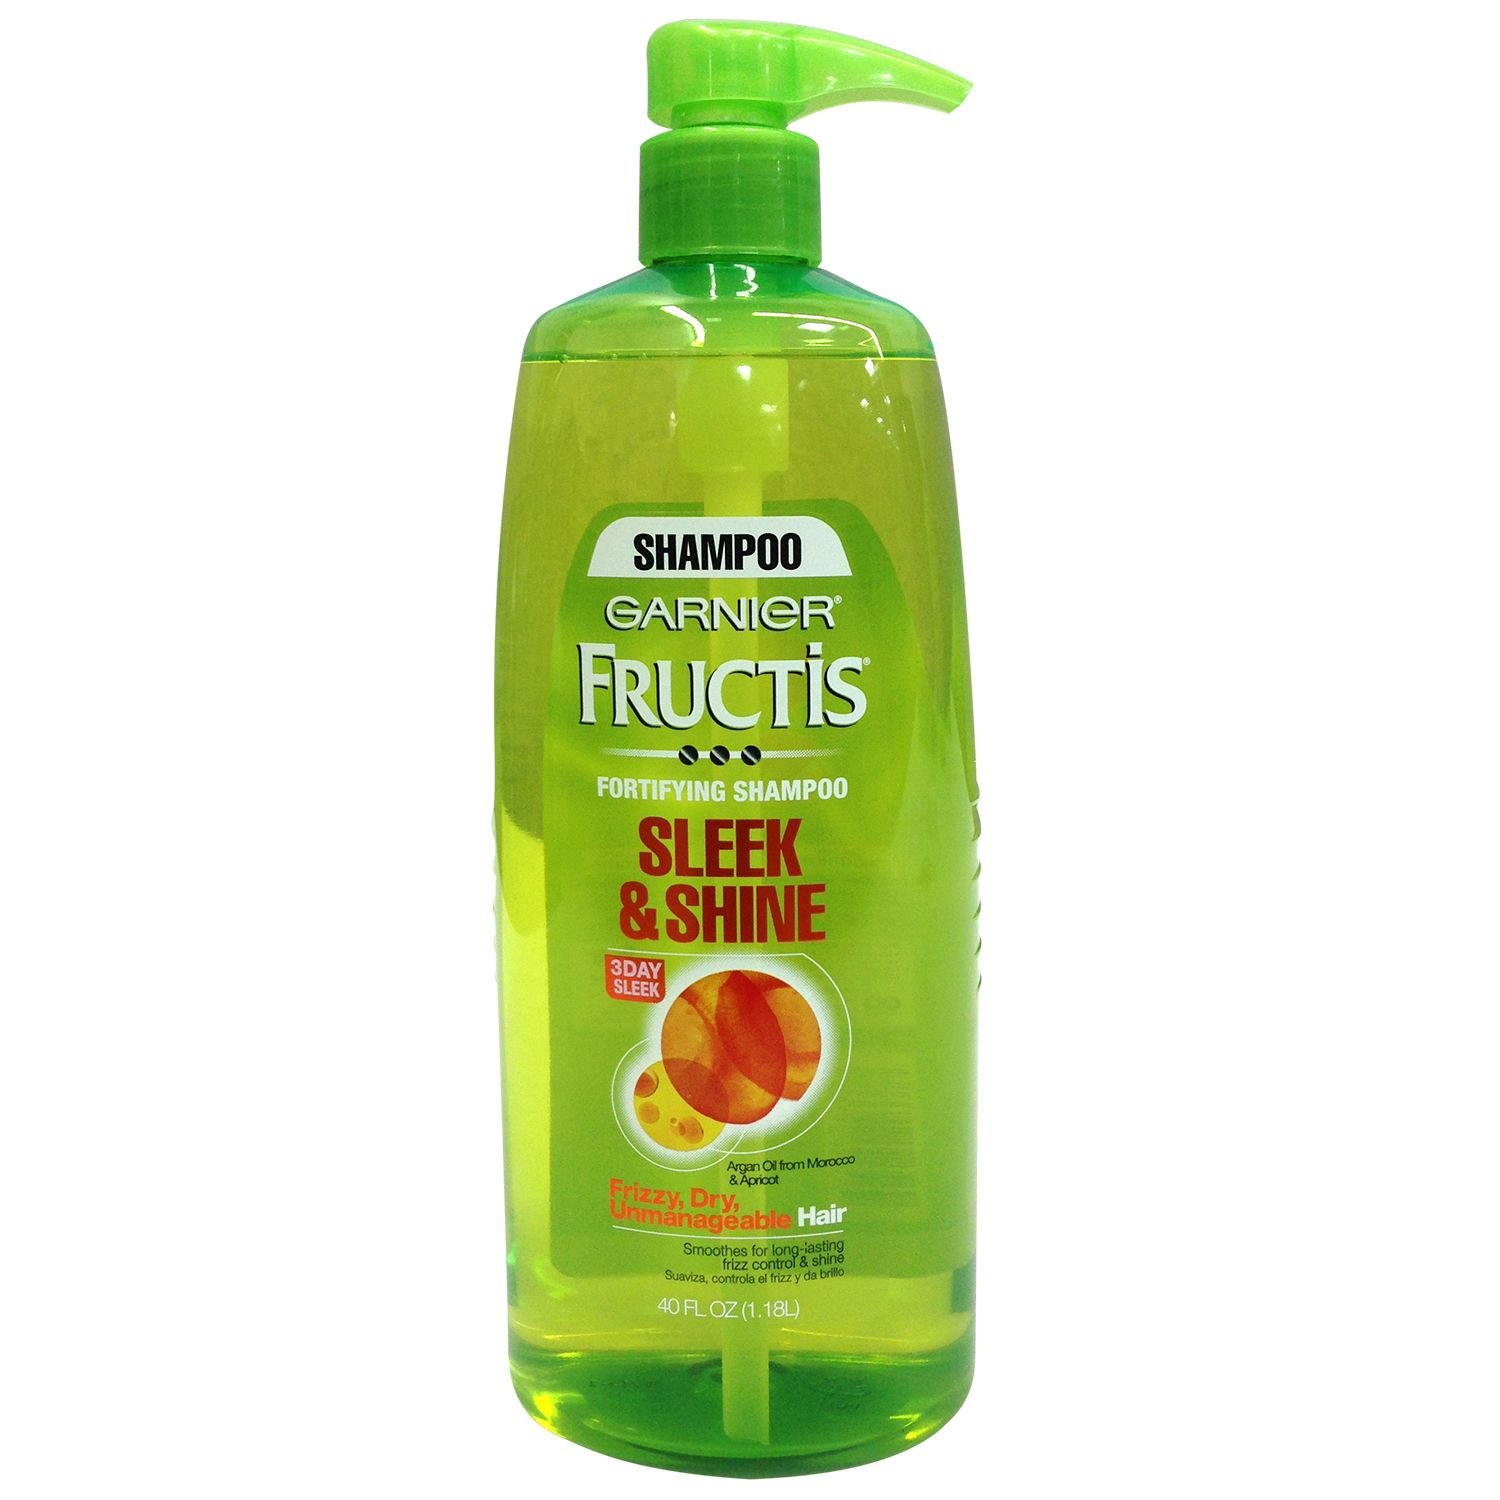 Garnier Fructis Shampoo Sleek & Shine - Pump - 40 oz.